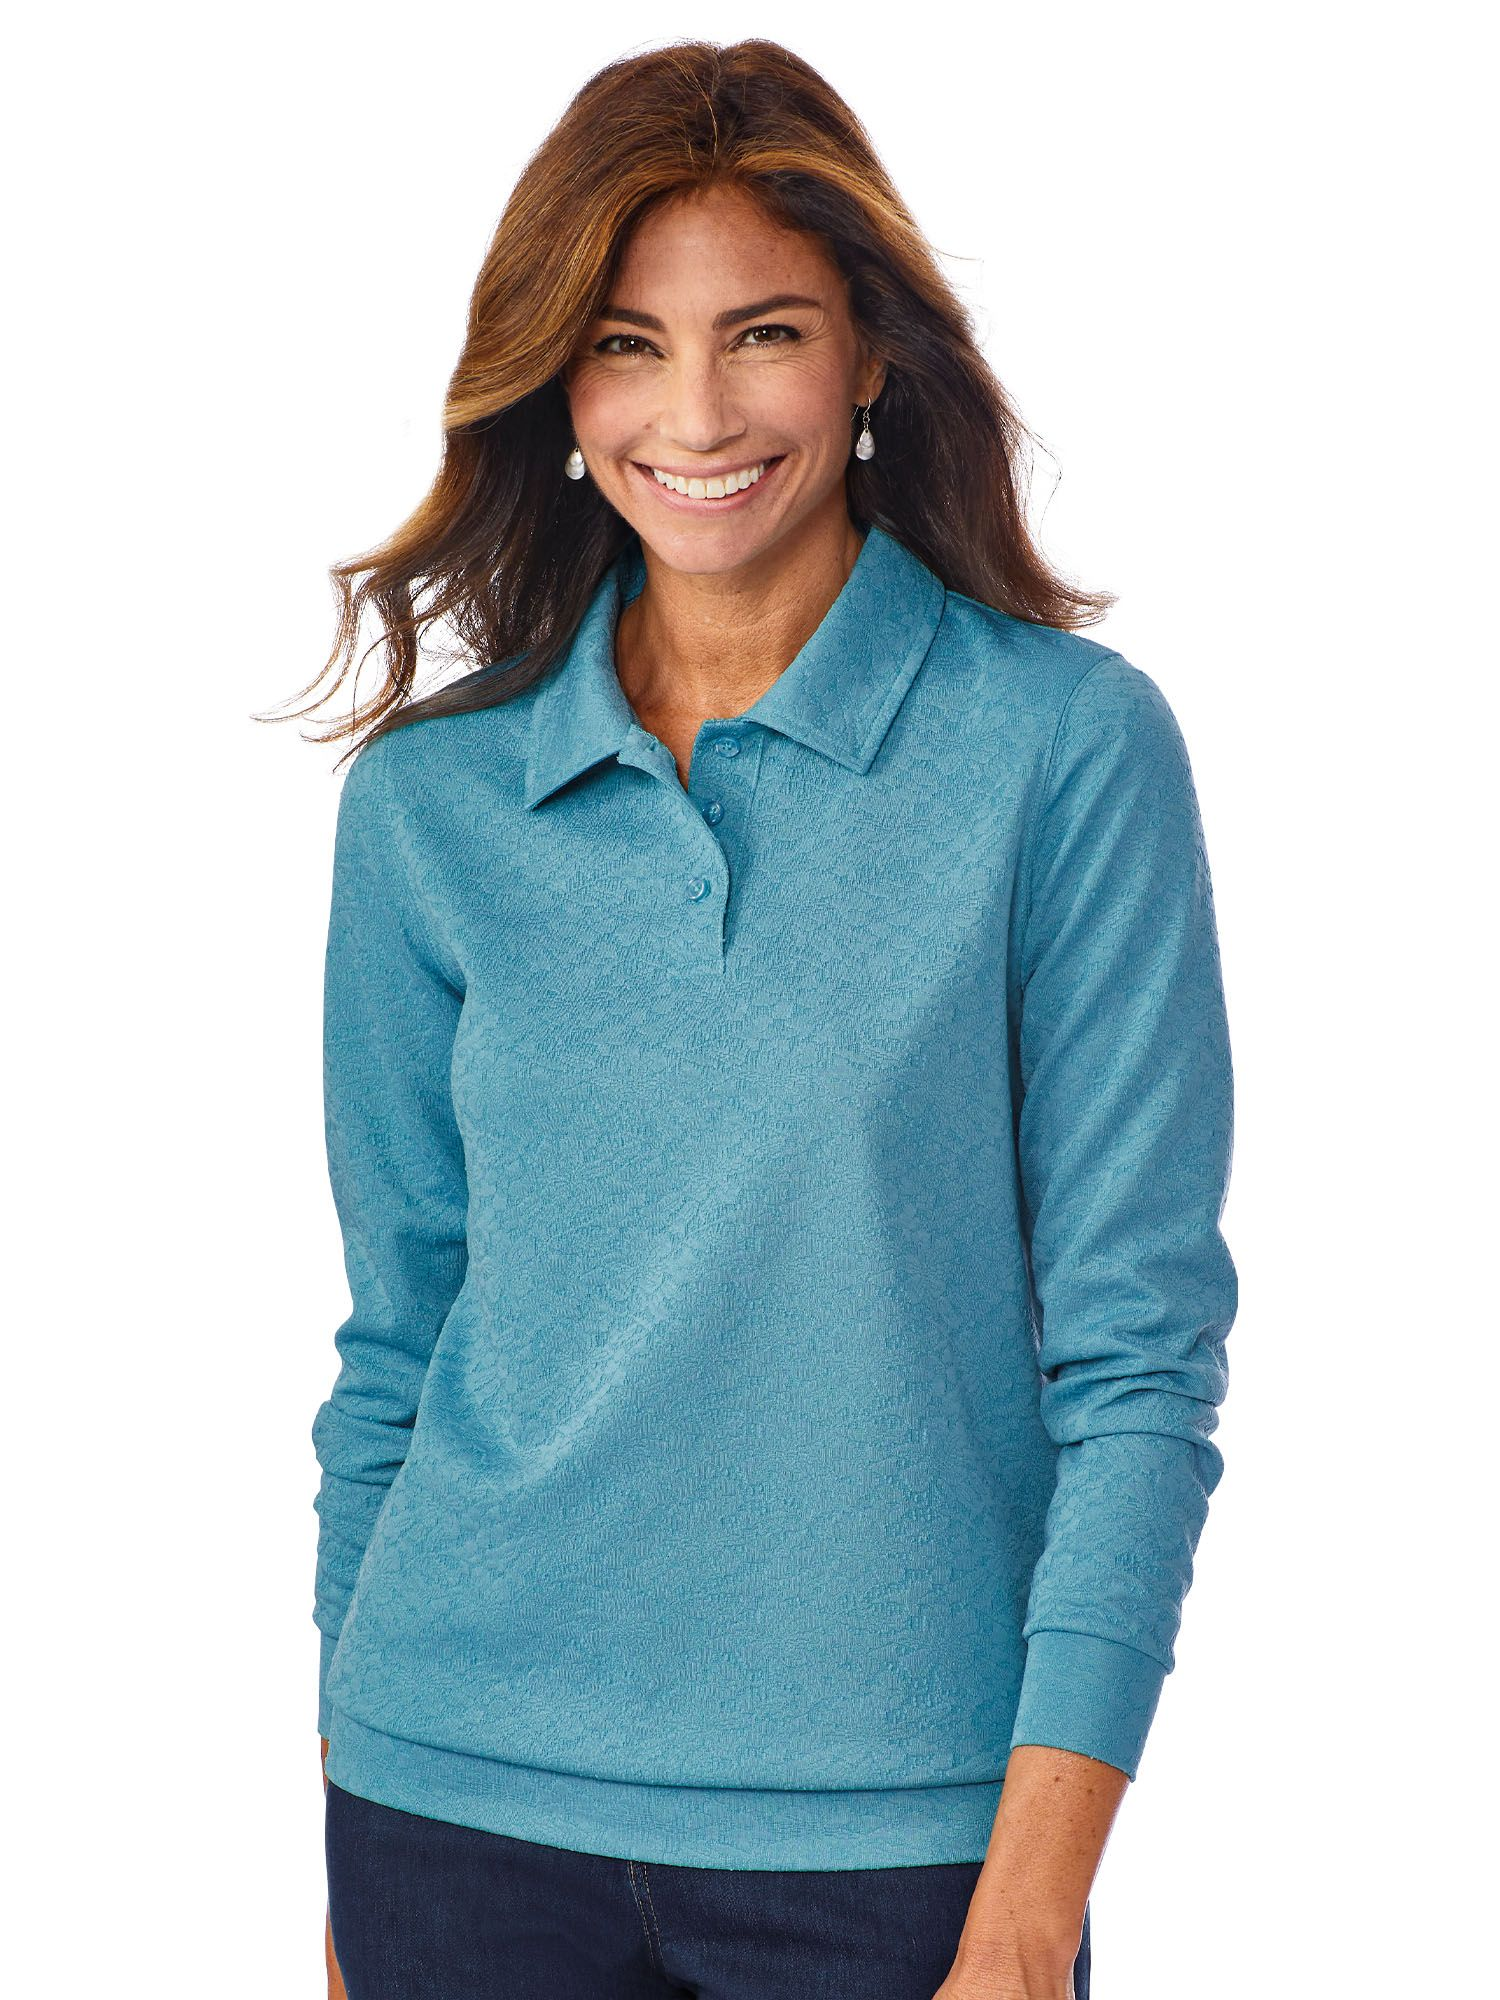 Haband Womens Banded Bottom Textured Polo